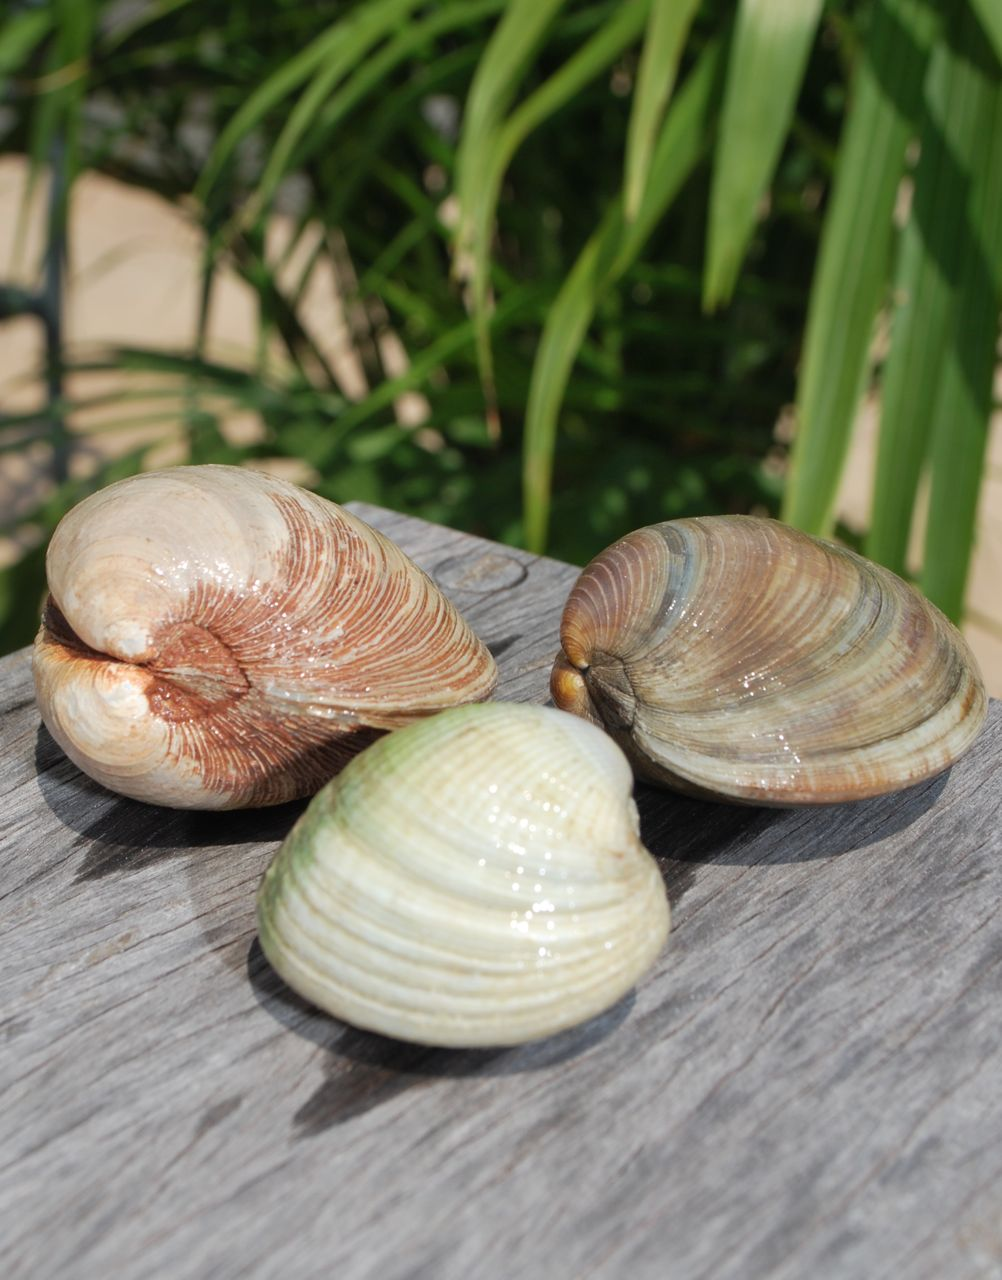 Littleneck clam (left), cockle (centre) and pasta clam (right)